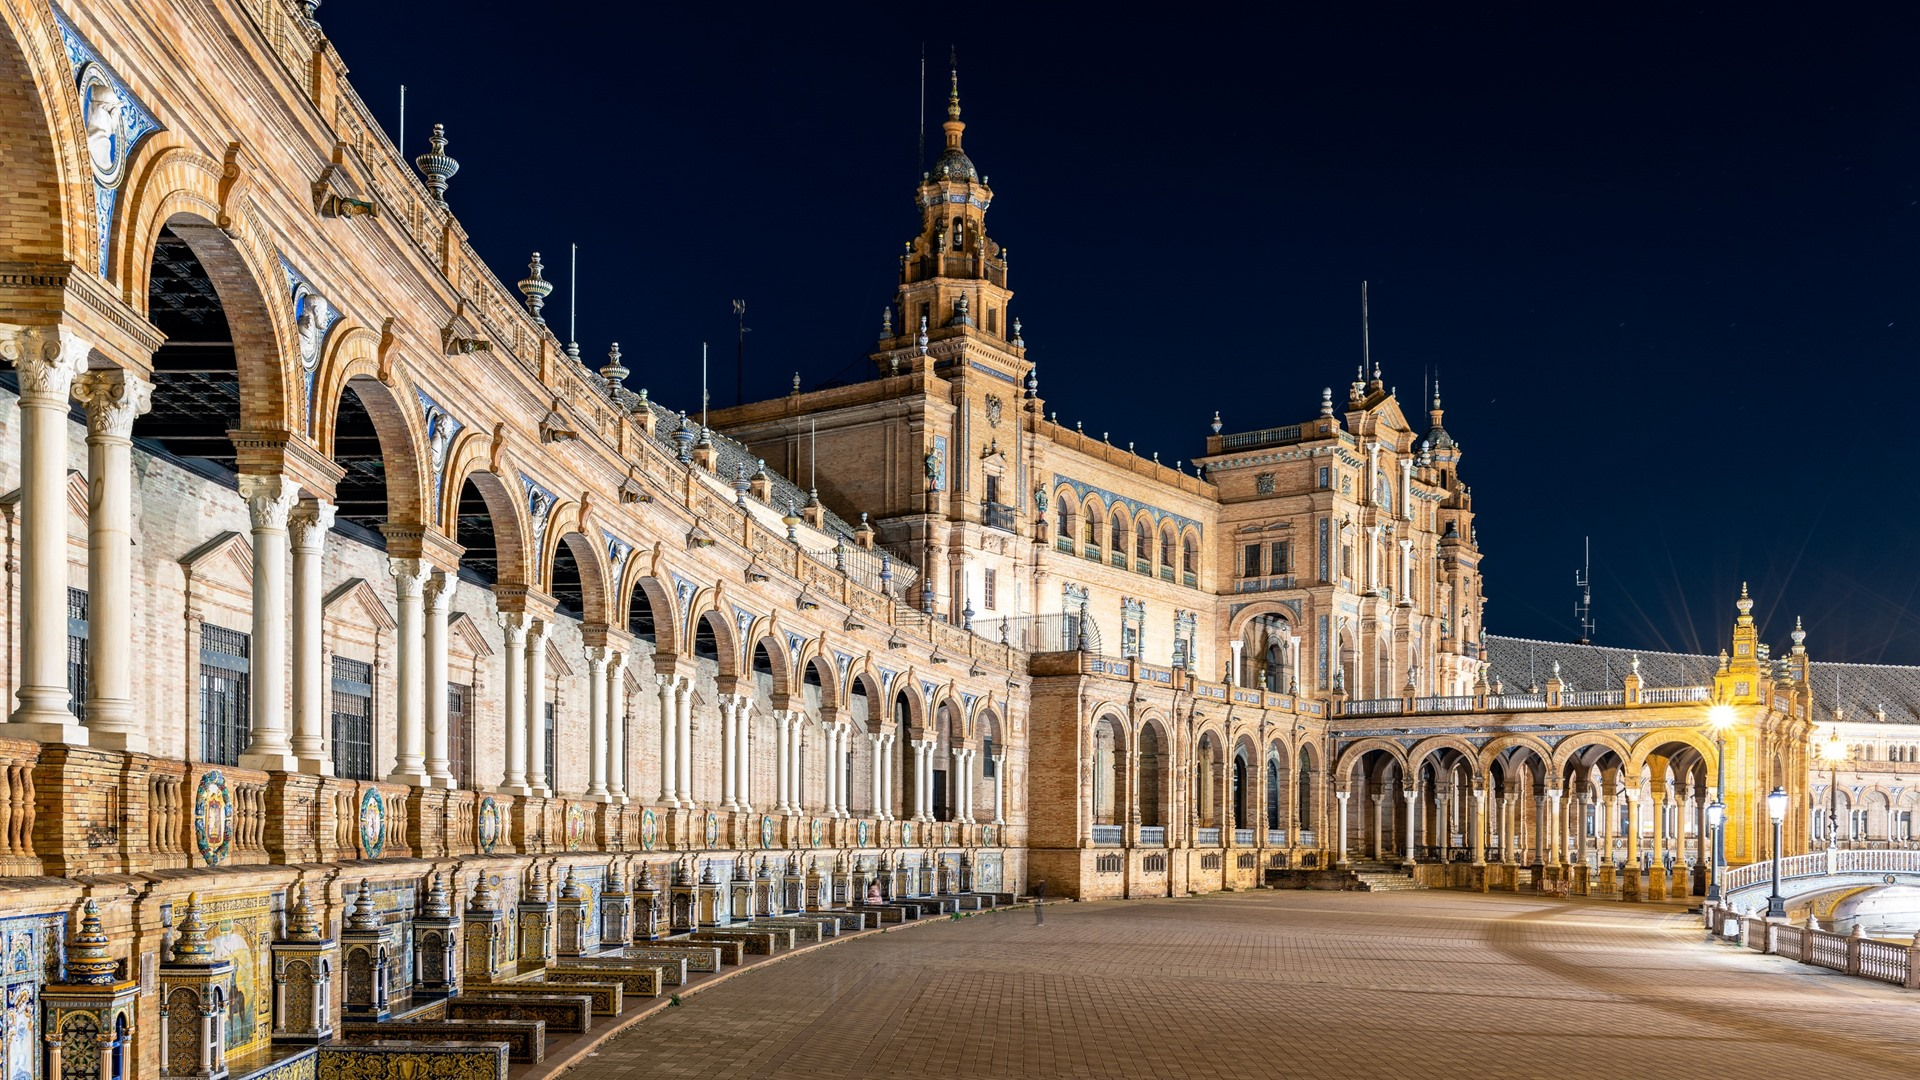 Wallpaper Plaza Of Spain Madrid Night City 2560x1600 Hd Picture Image